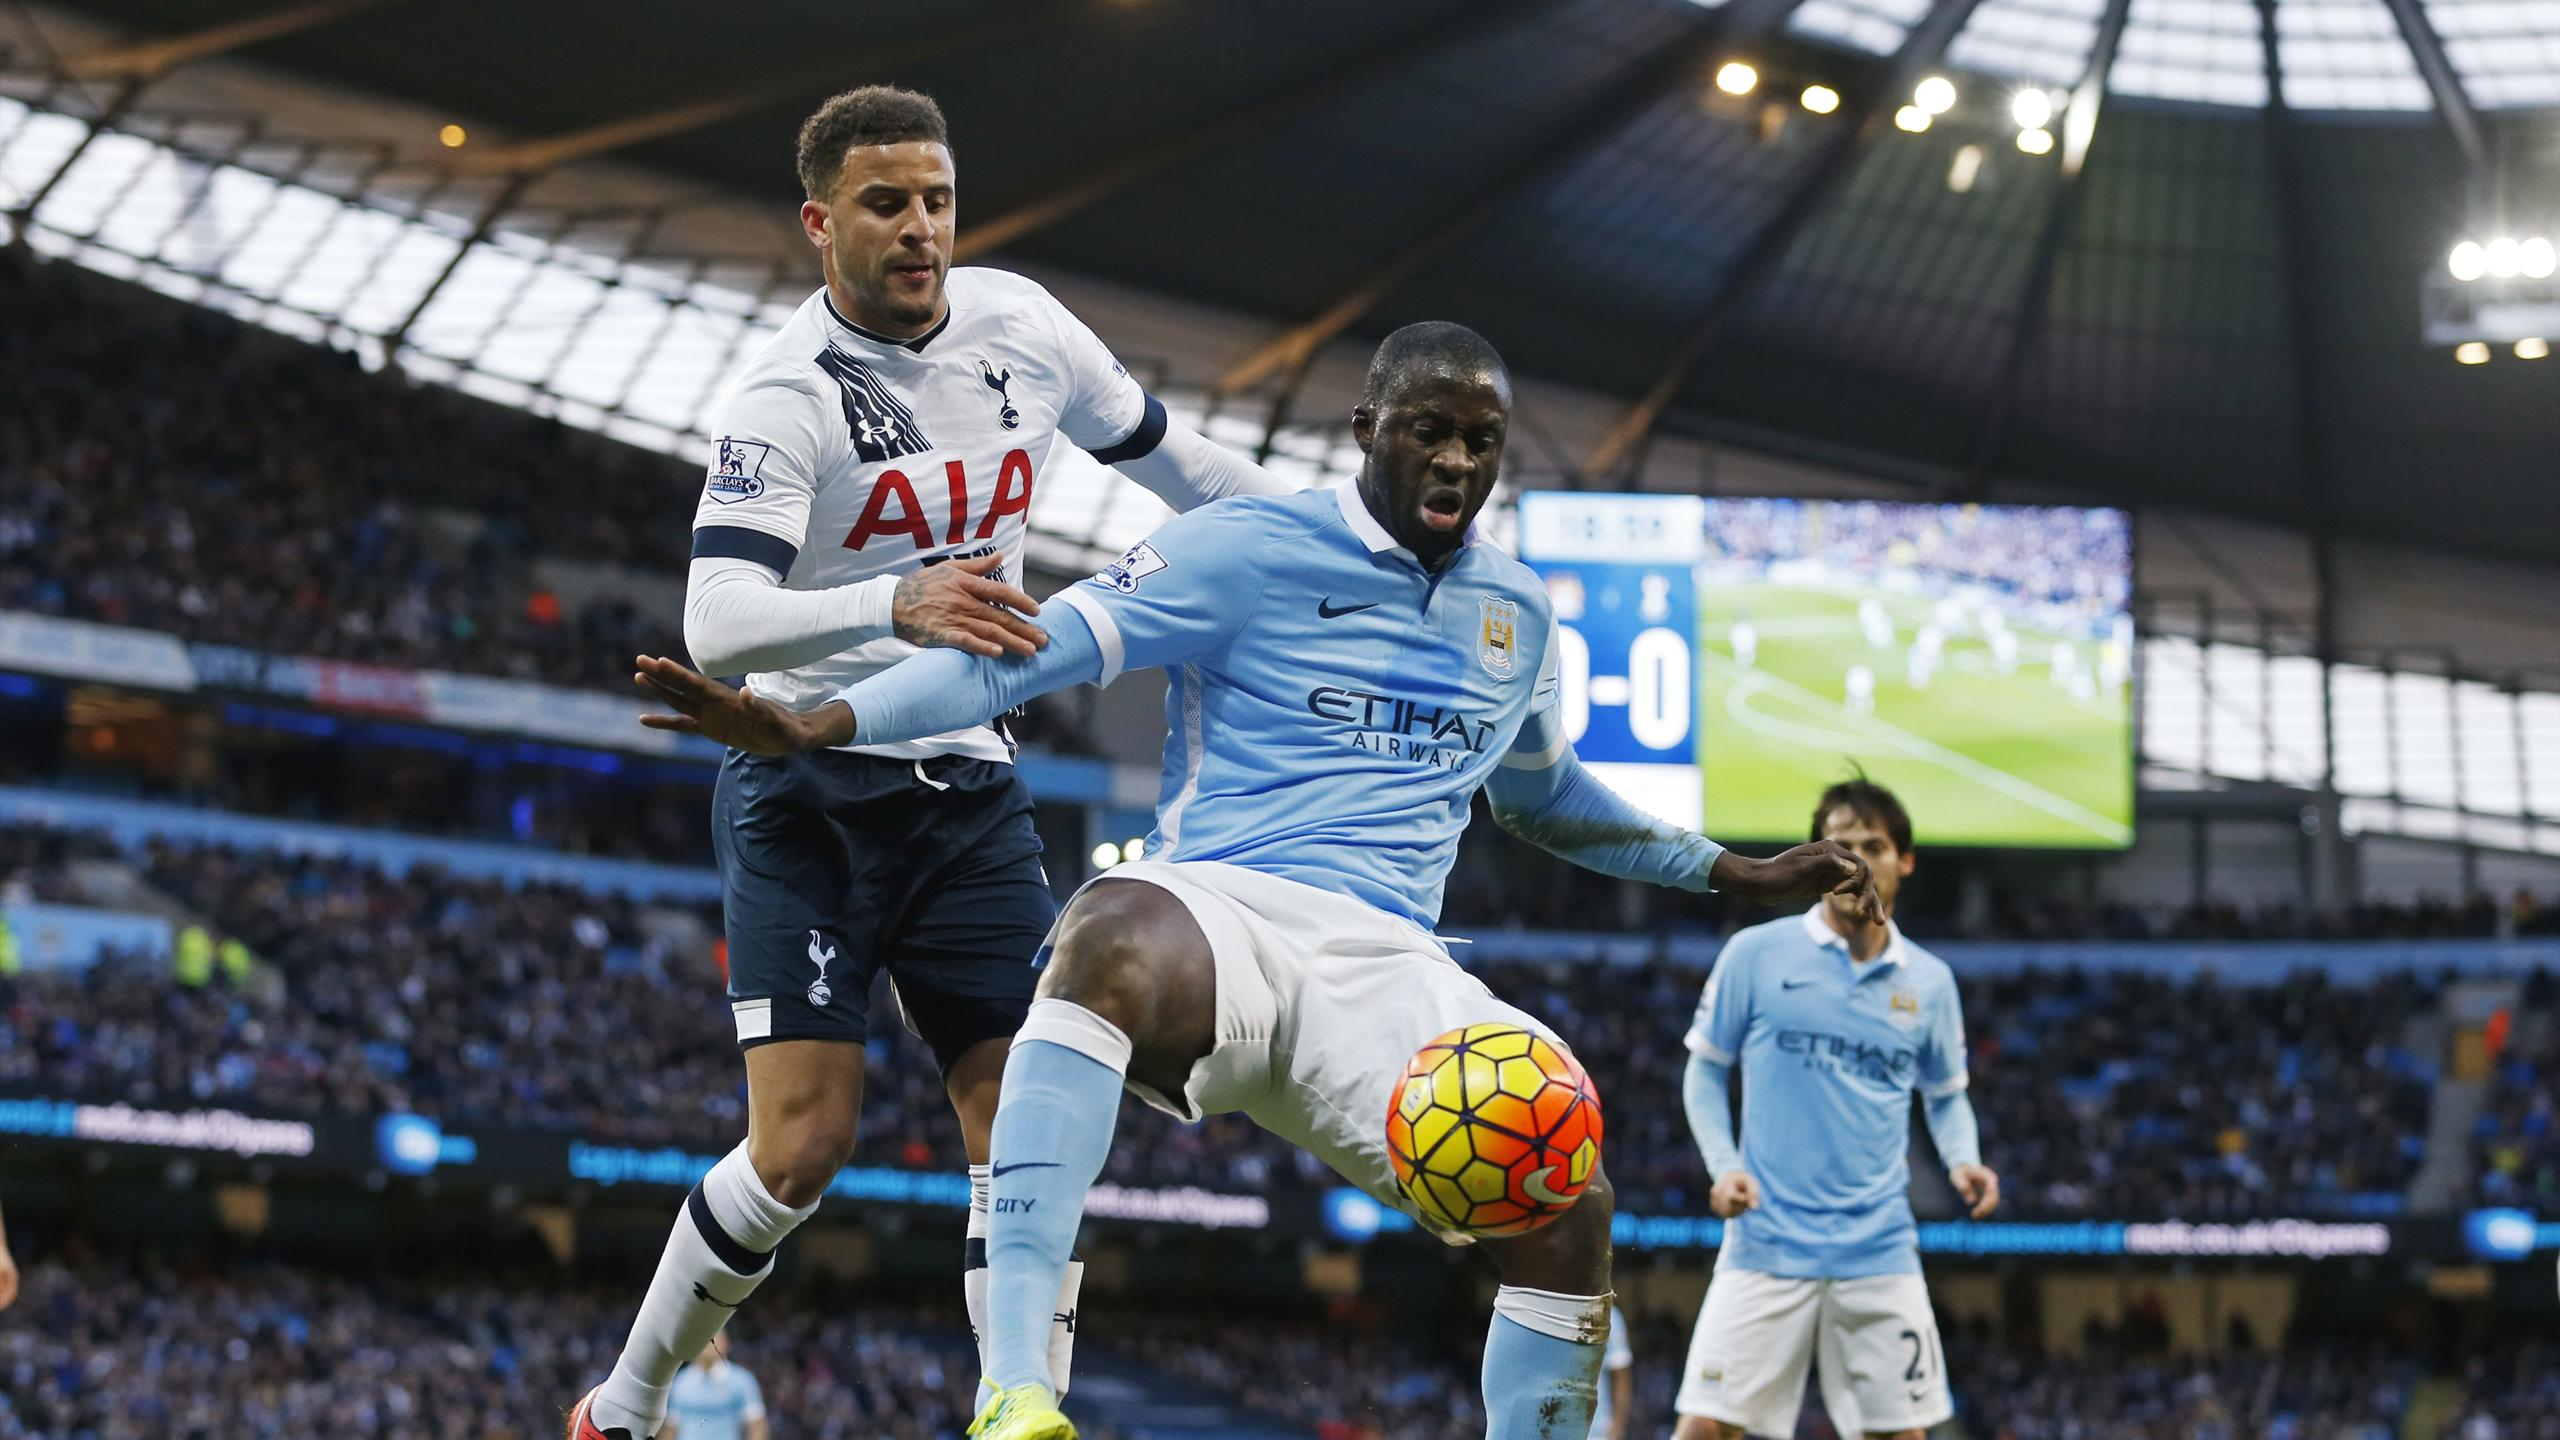 Manchester City's Yaya Toure in action with Tottenham's Kyle Walker